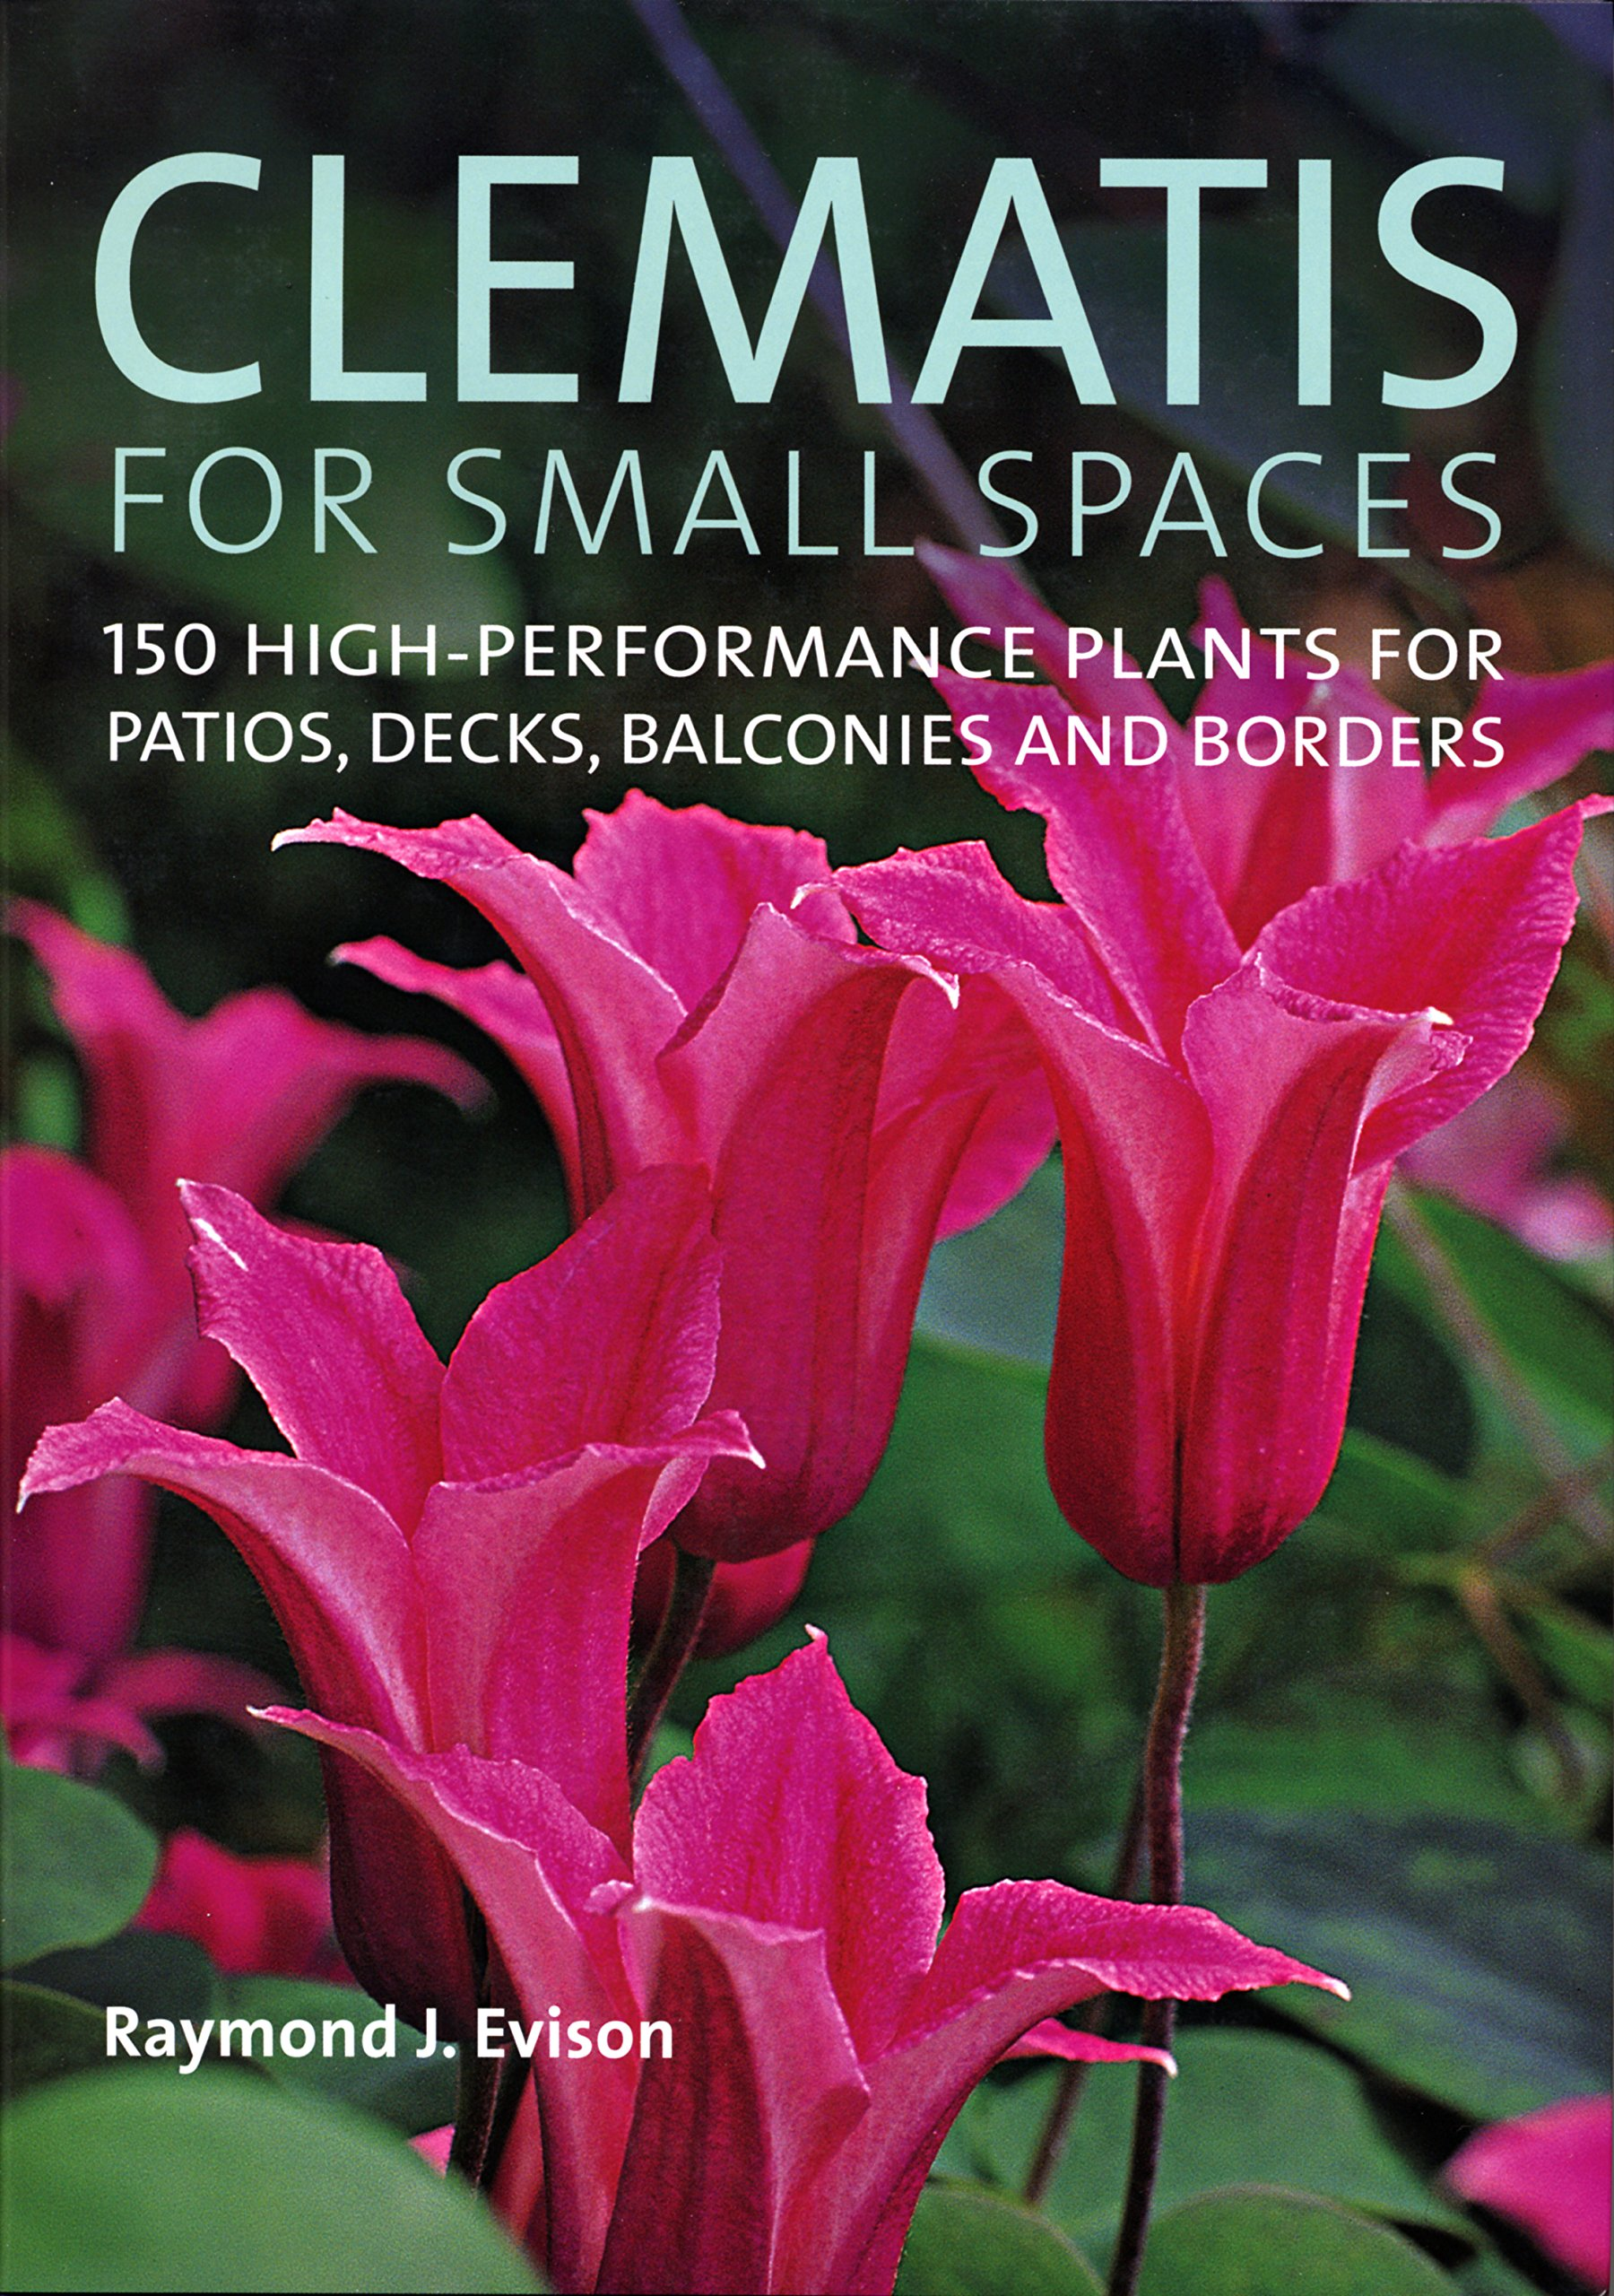 Clematis For Small Spaces: 150 High Performance Plants For Patios, Decks,  Balconies And Borders: Raymond Evison: 9780881928518: Amazon.com: Books